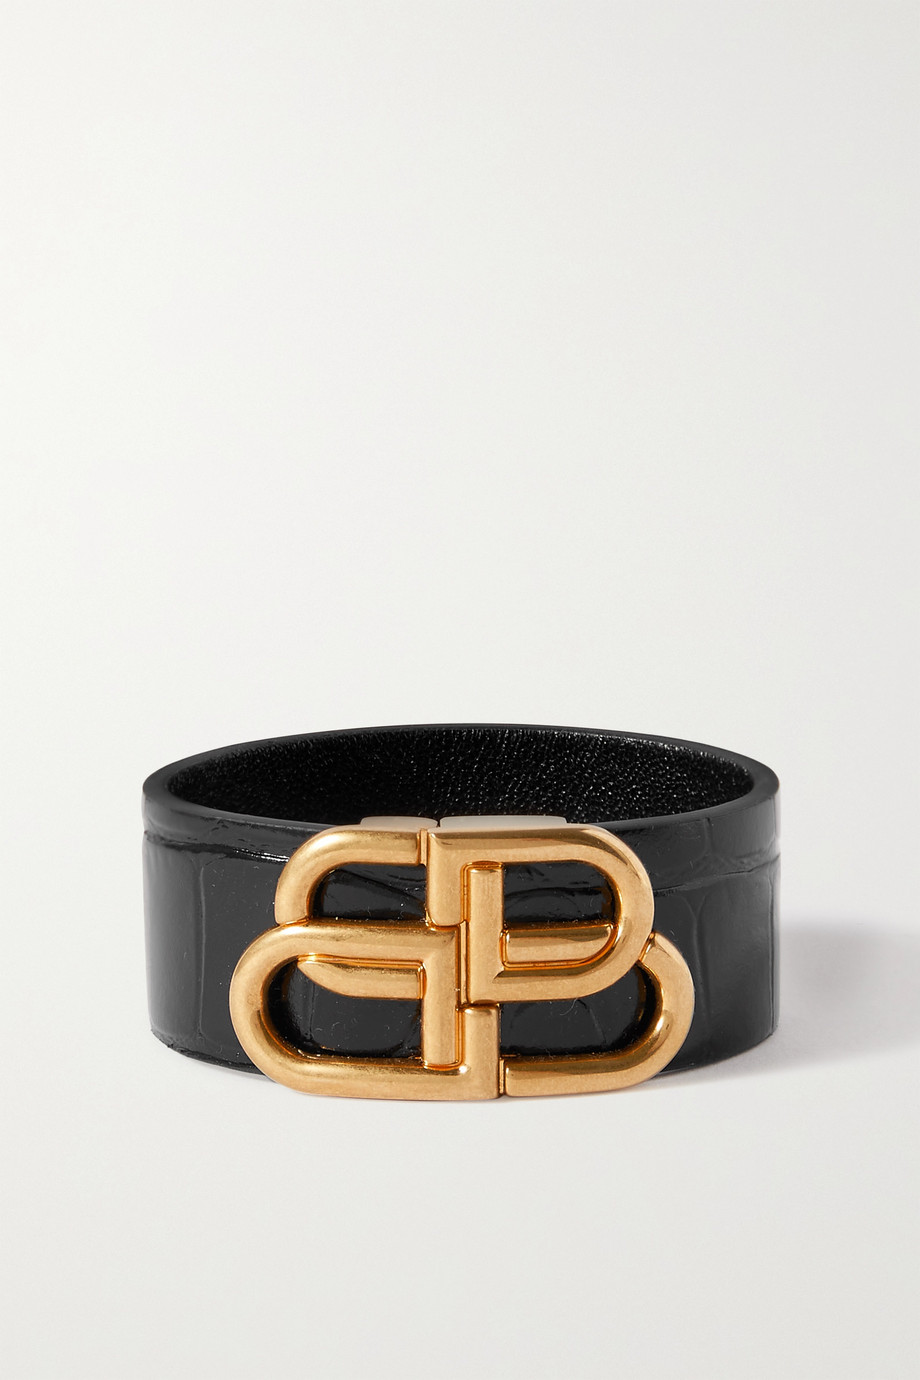 Balenciaga Glossed croc-effect leather and gold-tone cuff